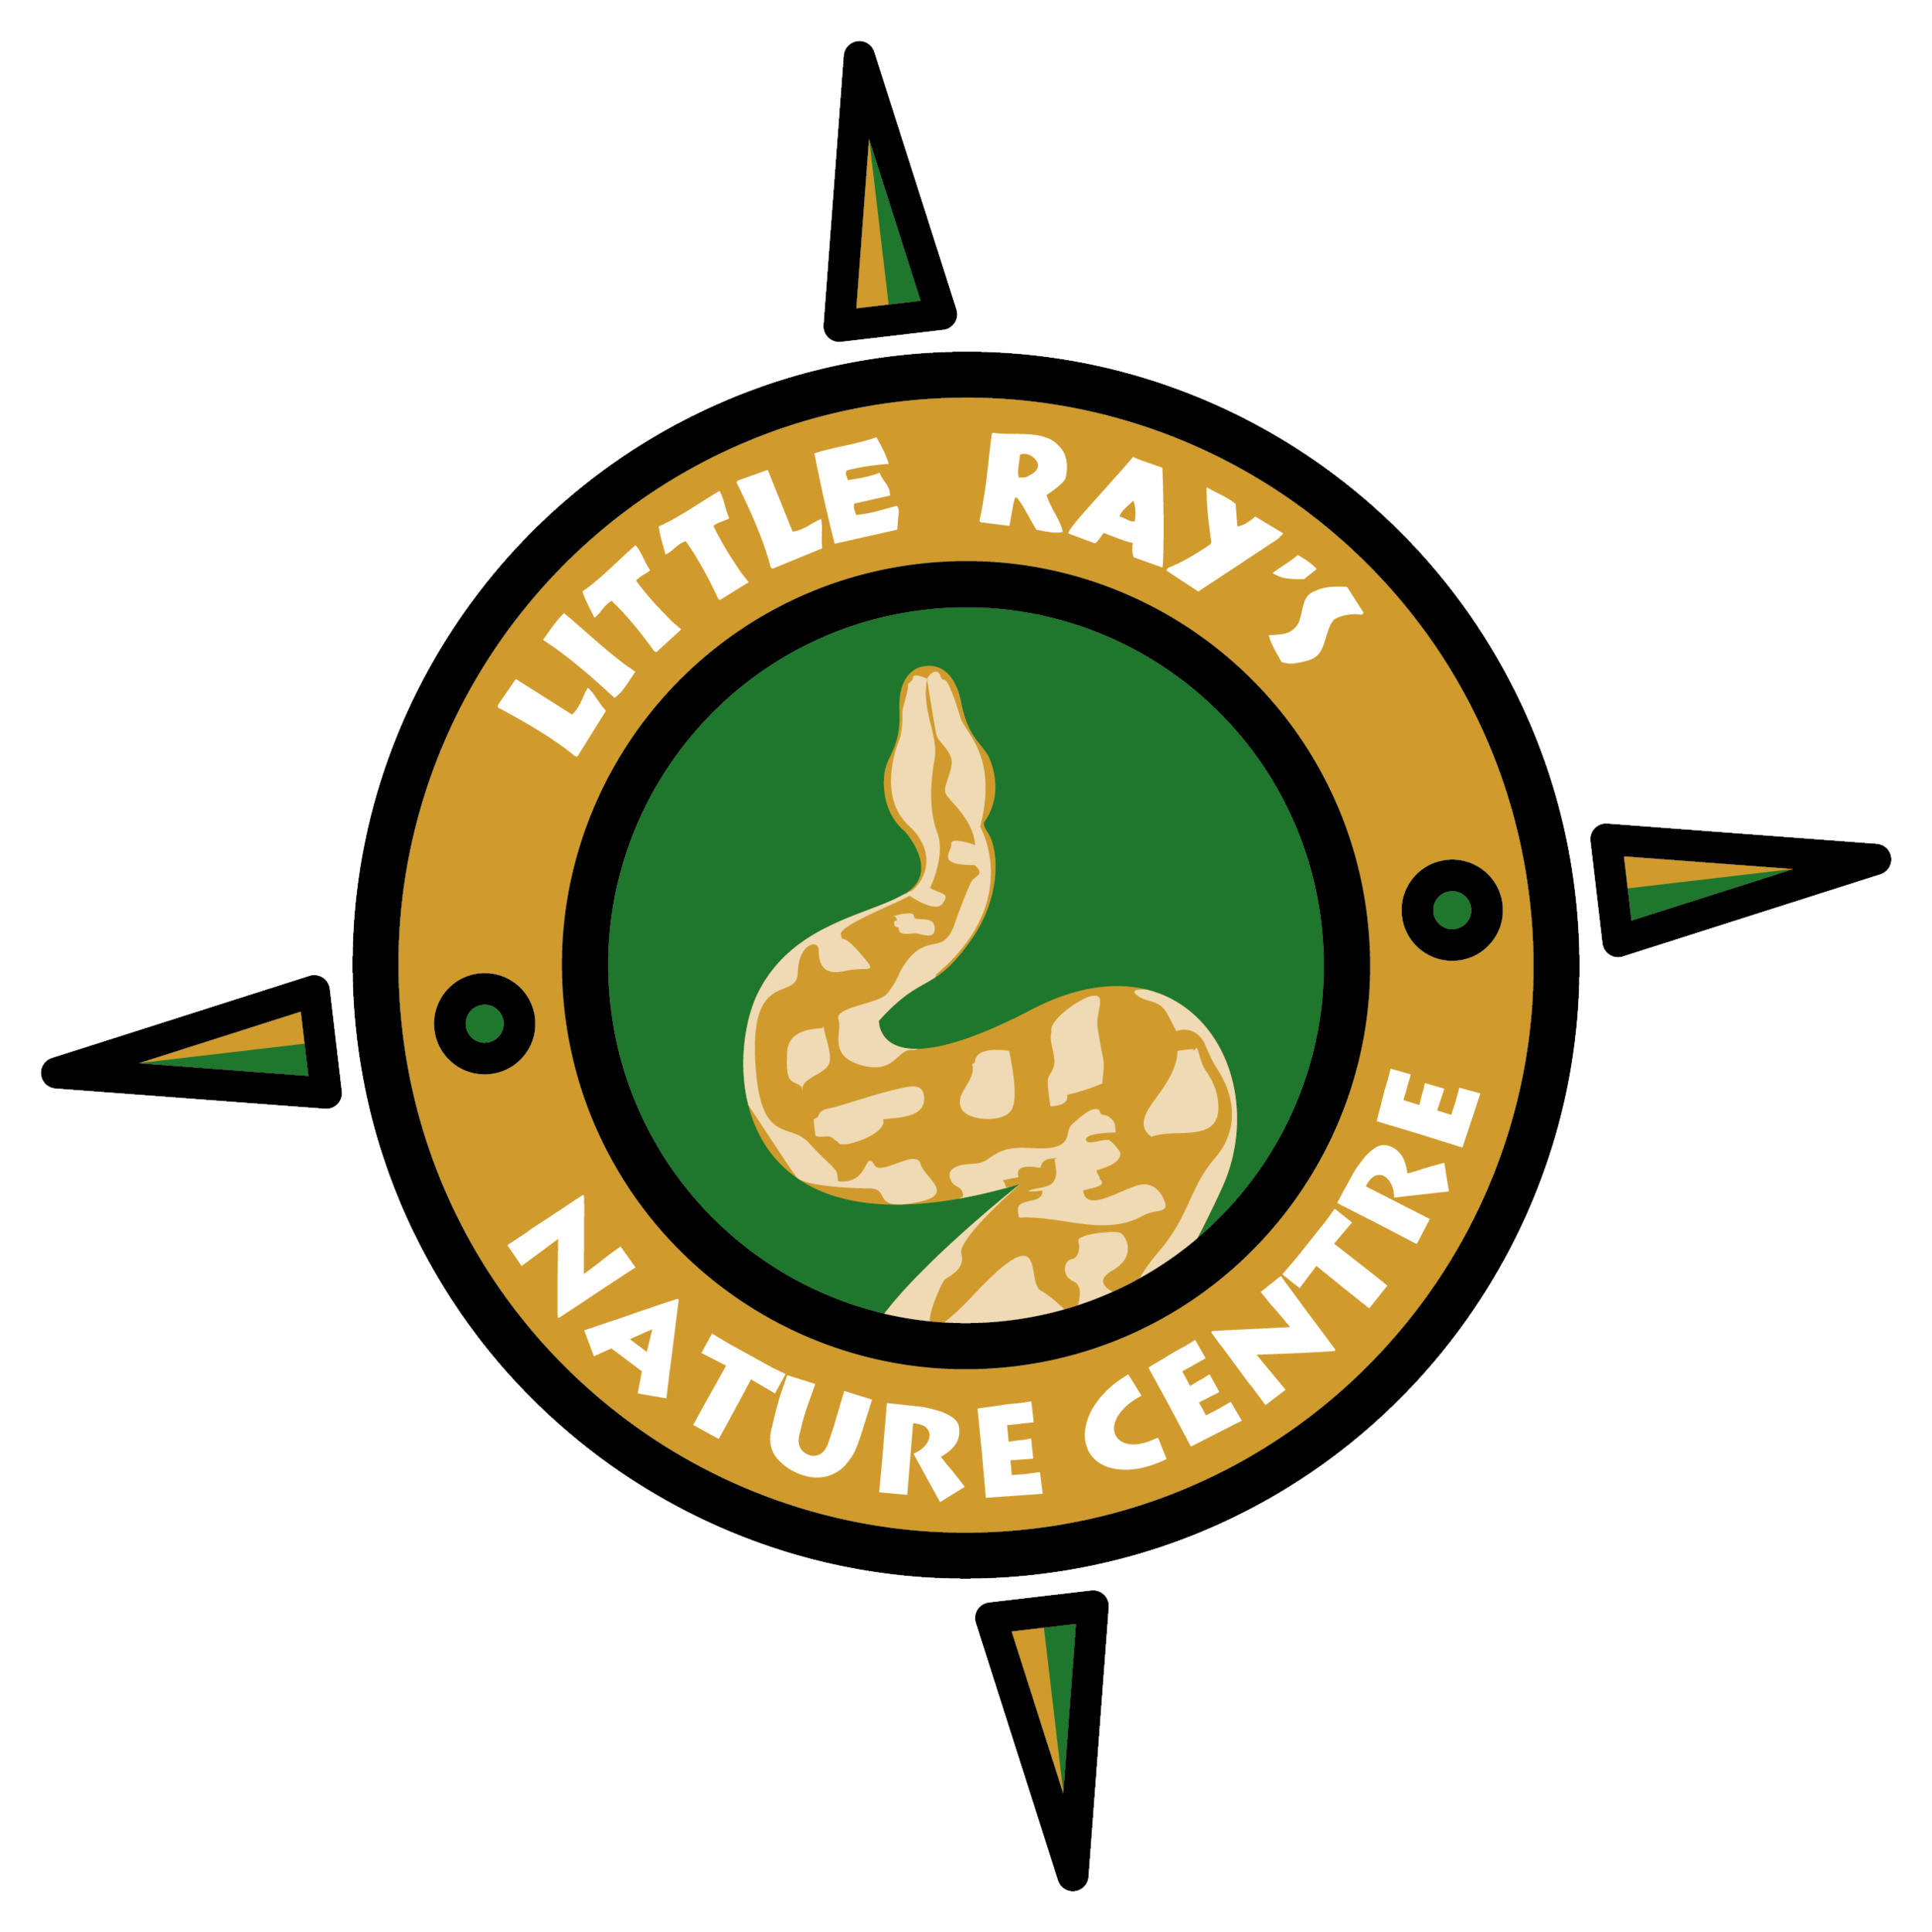 LITTLE_RAYS_NC-no-white-border.png